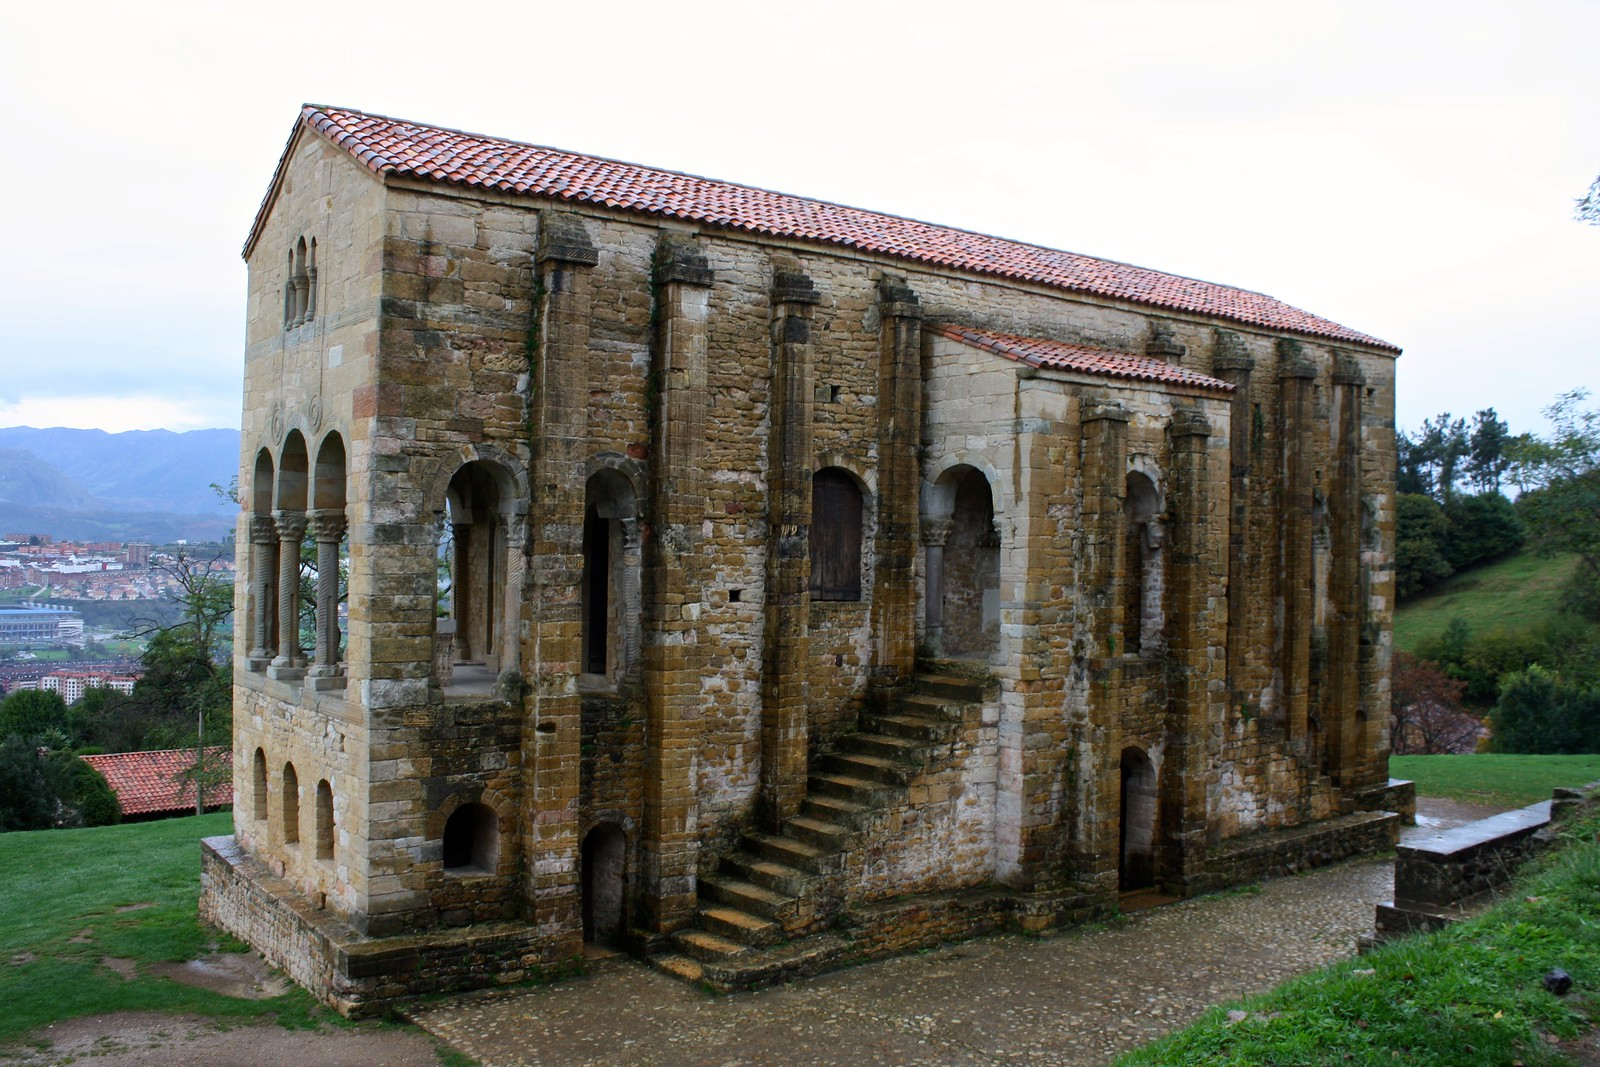 Pre-romanesque churches of Oviedo, Spain